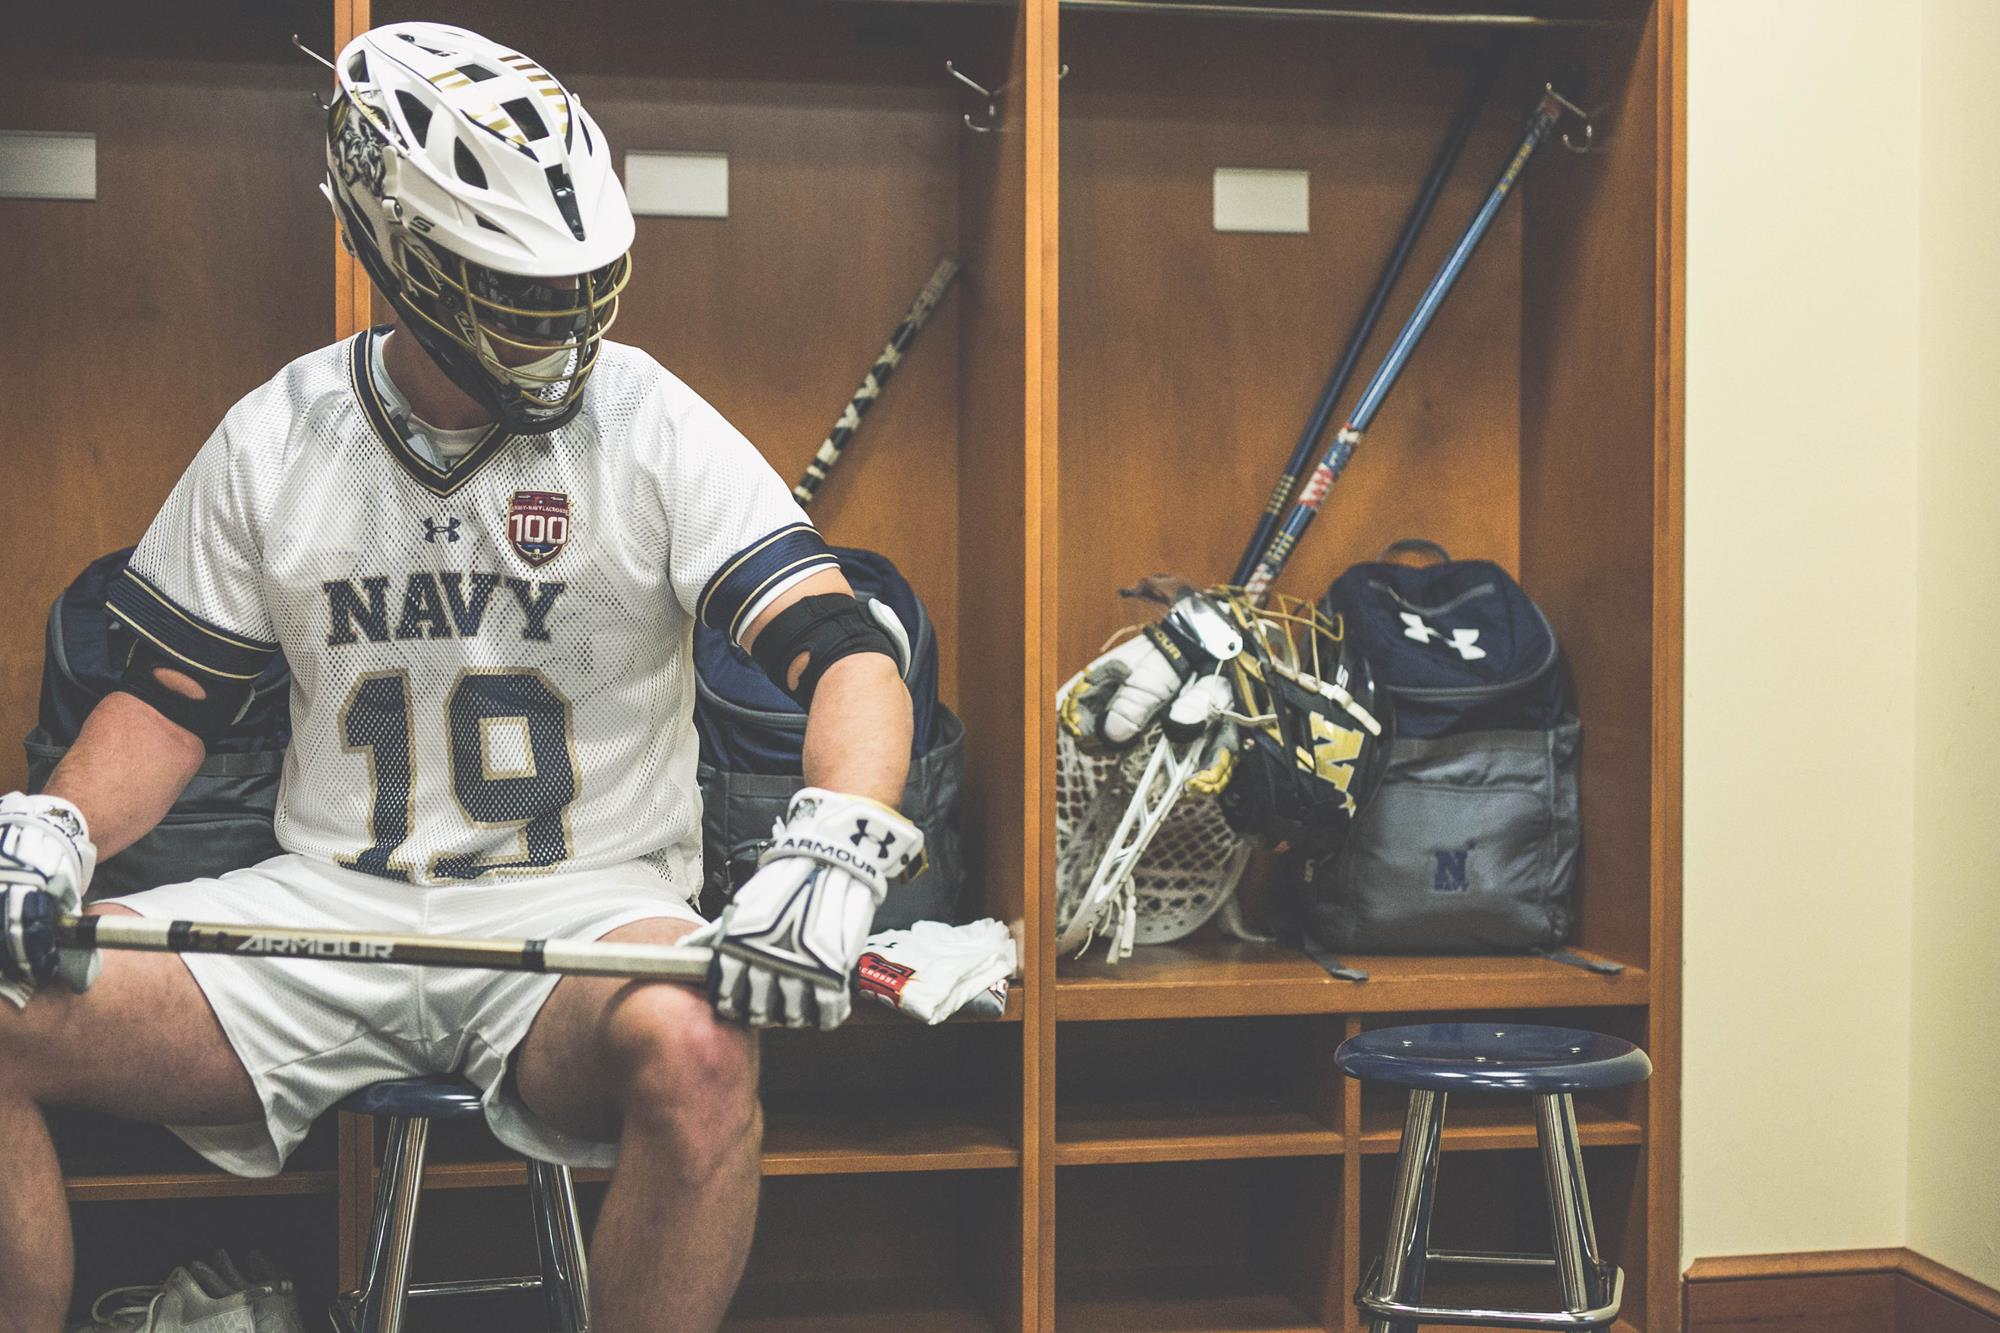 Navy Unveils Throwback Uniform For 100th Army Navy Men S